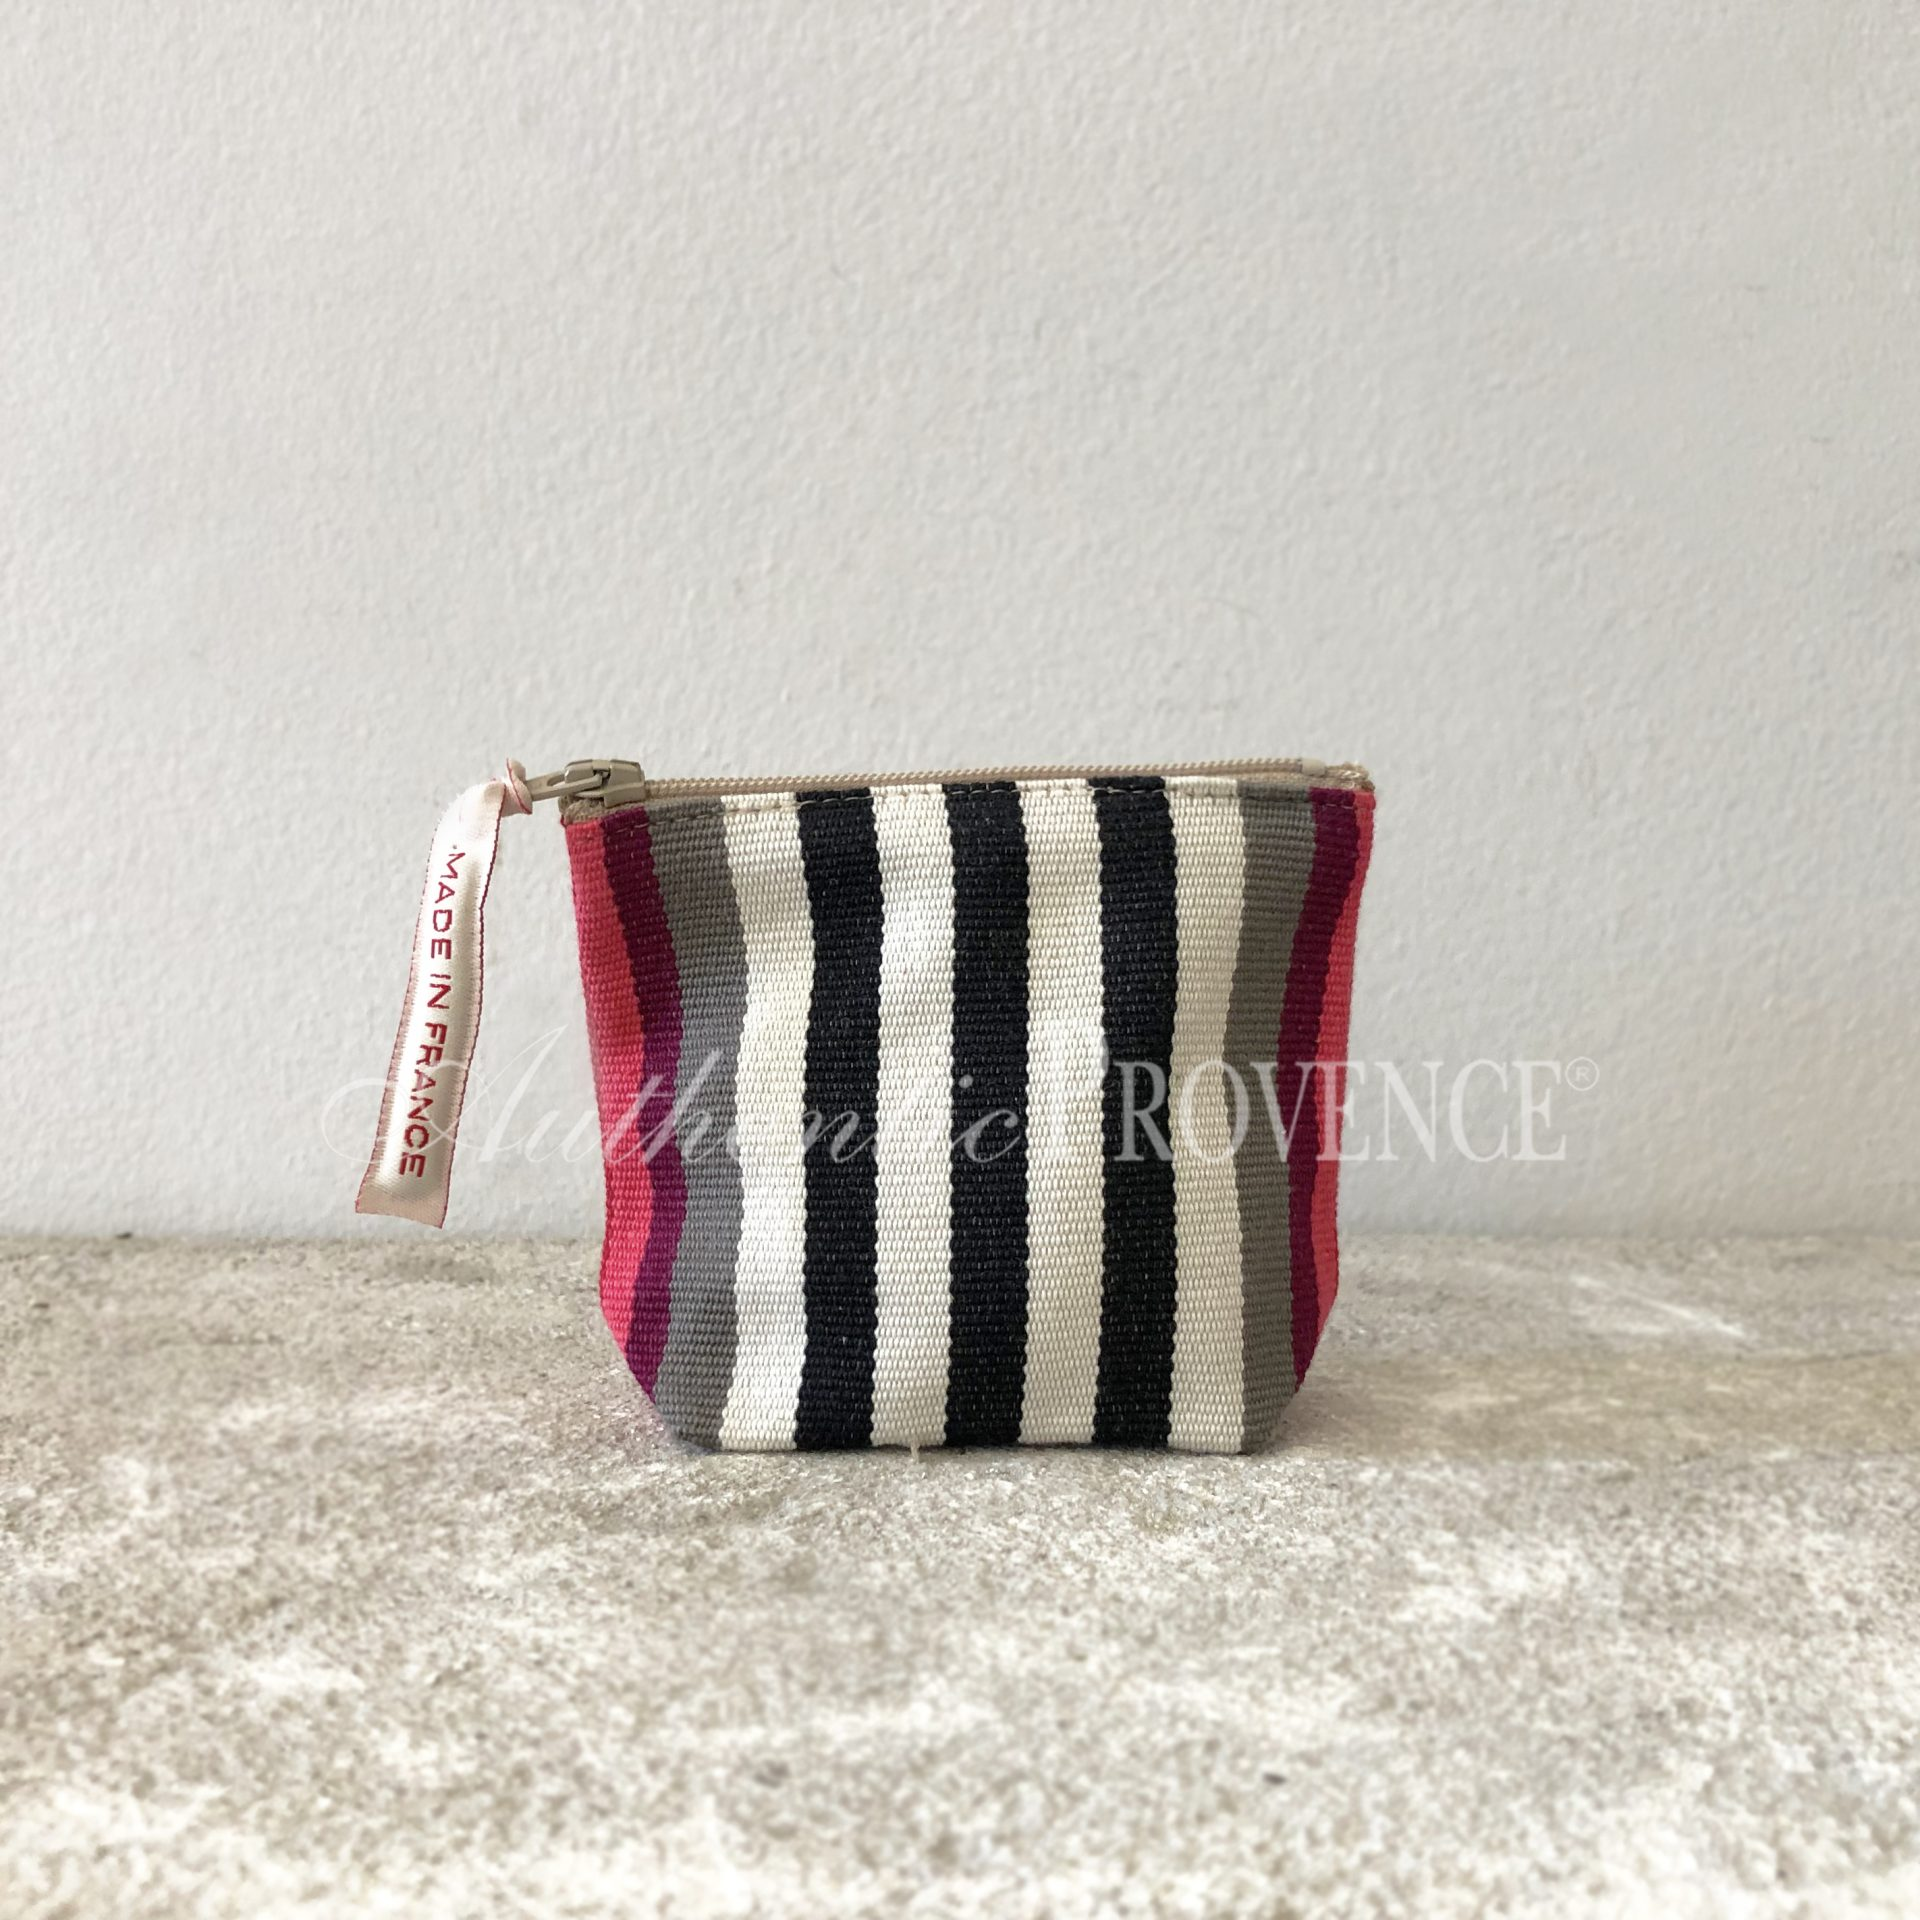 Toulon Coin Purse